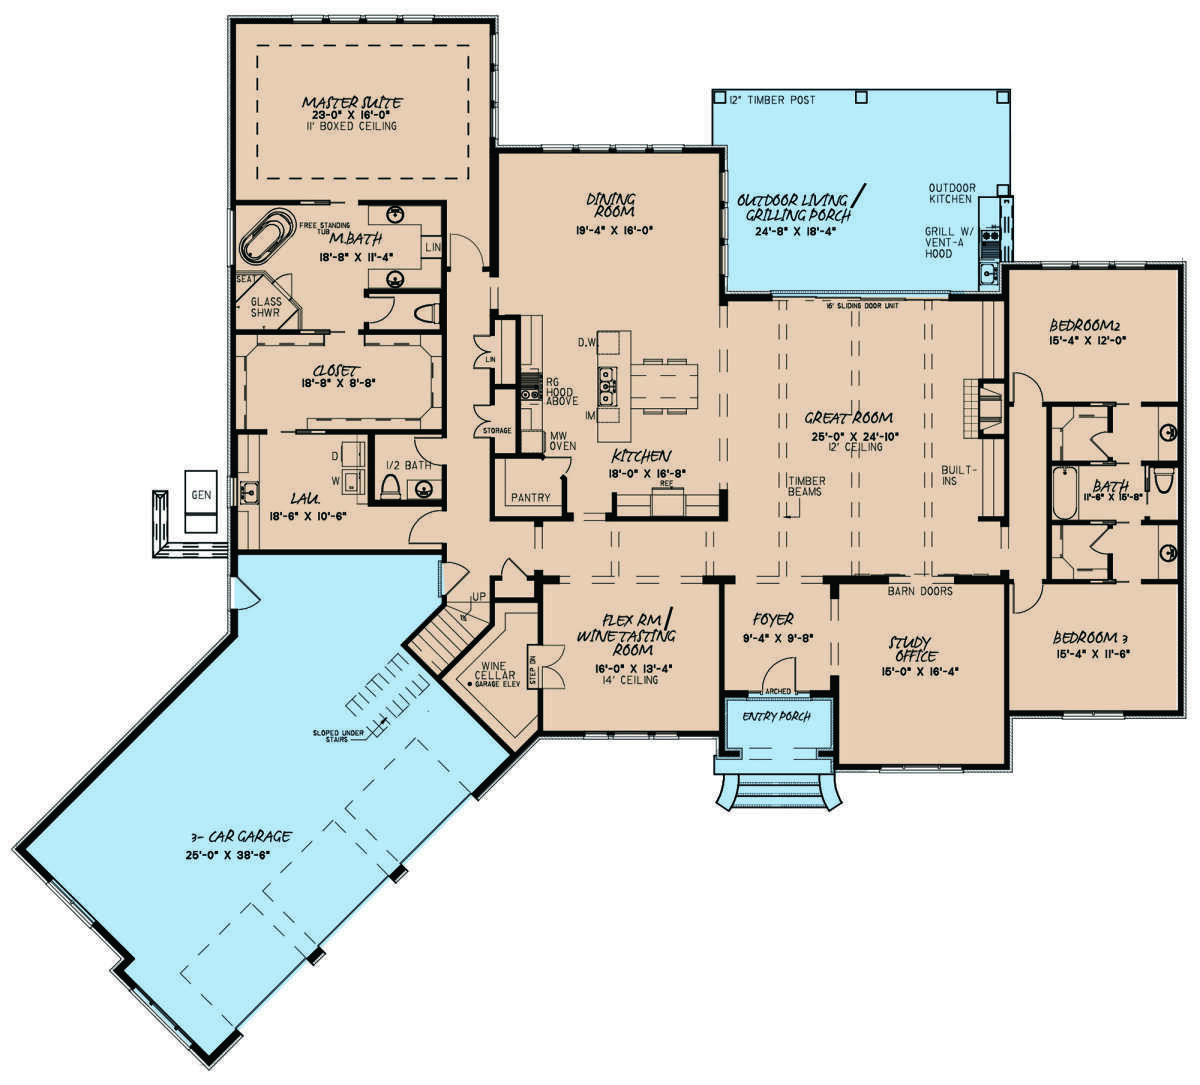 House Plan 8318 00138 European Plan 3 982 Square Feet 3 4 Bedrooms 3 5 Bathrooms Garage House Plans European Plan European House Plans